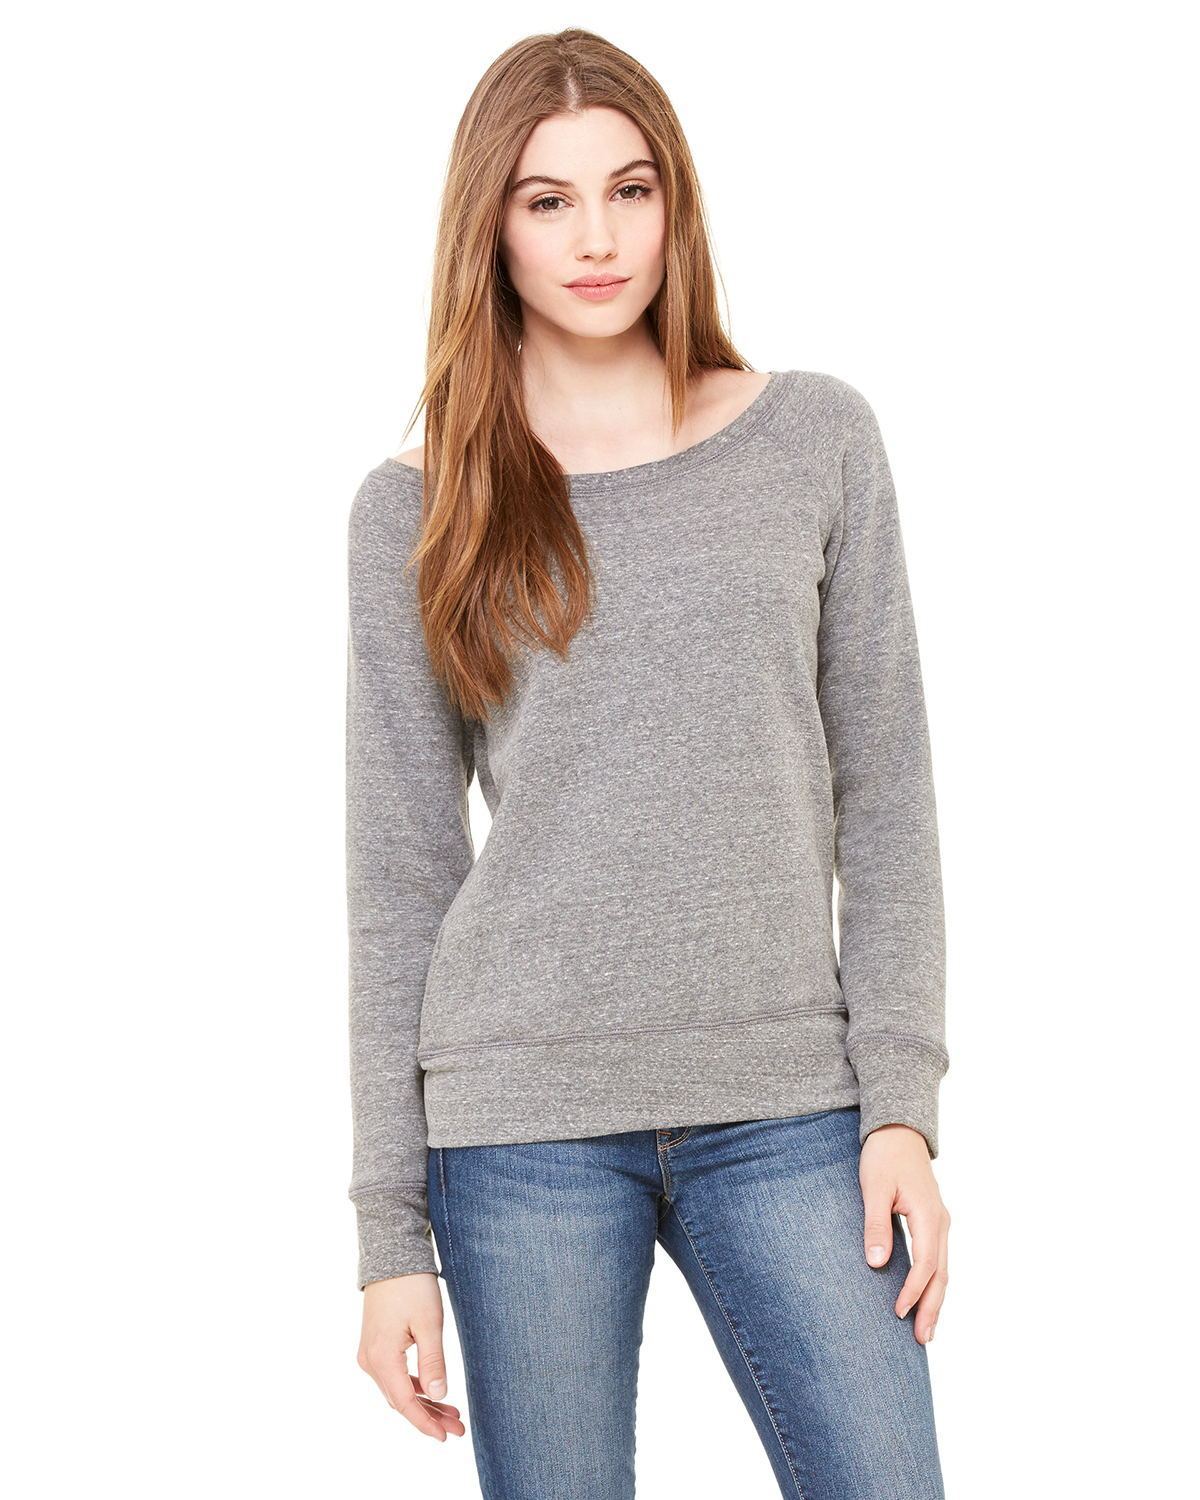 Bella 7501 Ladies 8.2 oz. Triblend Slouchy Wide Neck Fleece